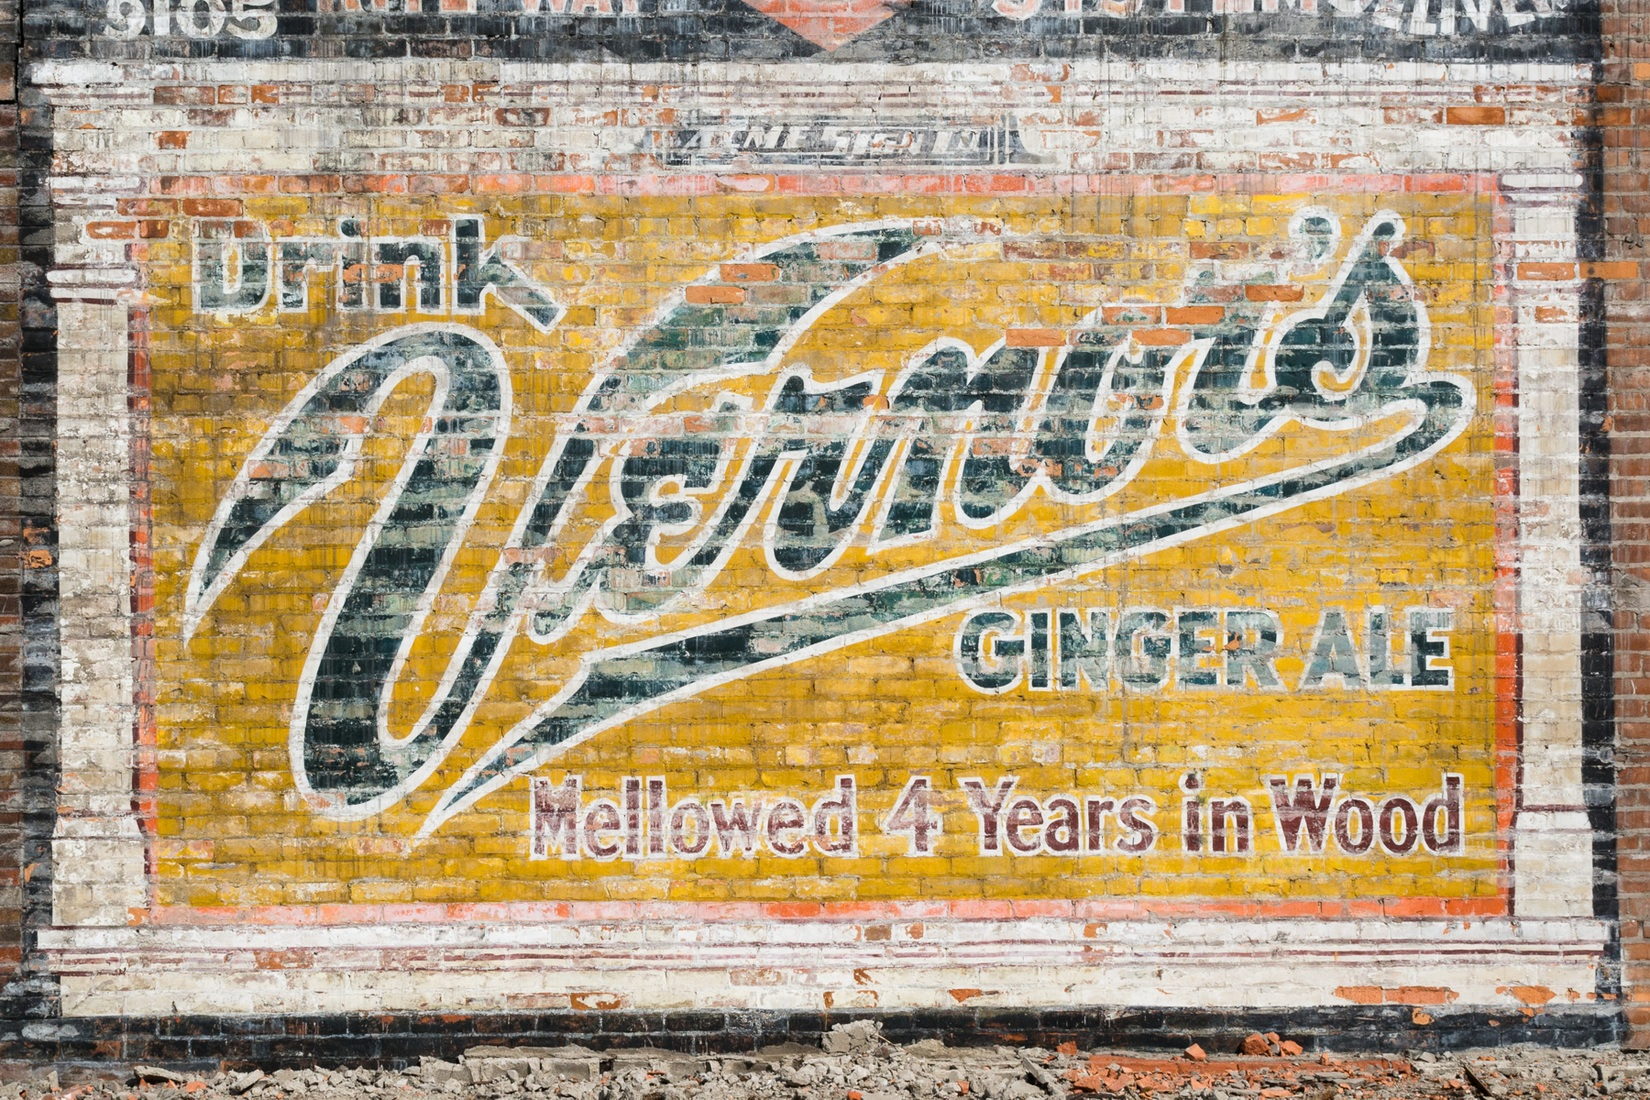 Signs Vernor's Ghost Sign No. 2